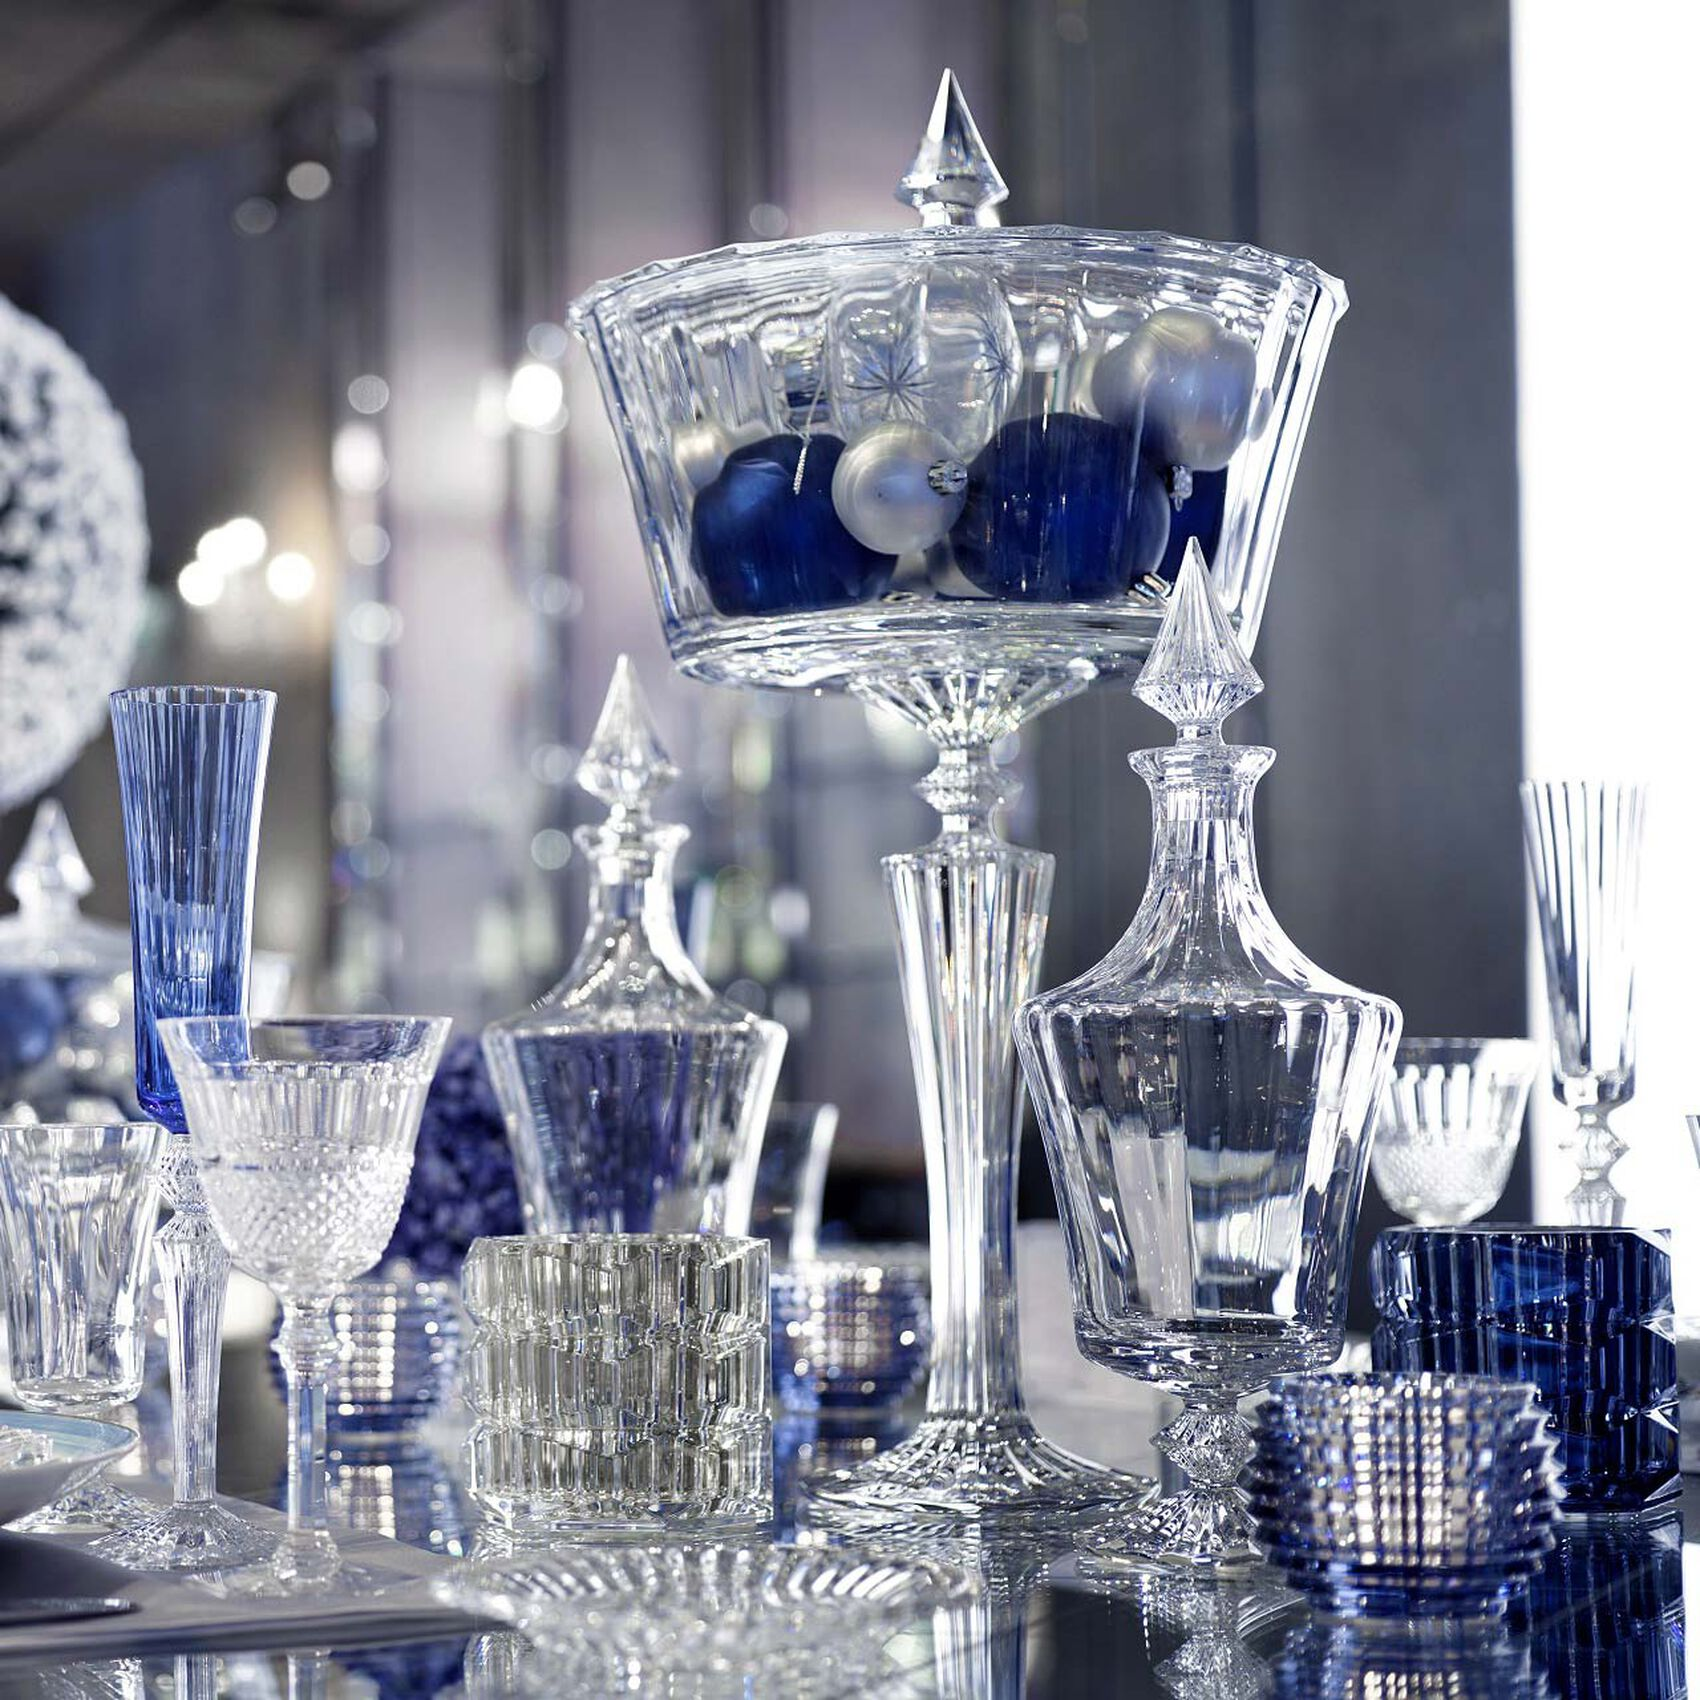 Mille Nuits Decanter - Baccarat